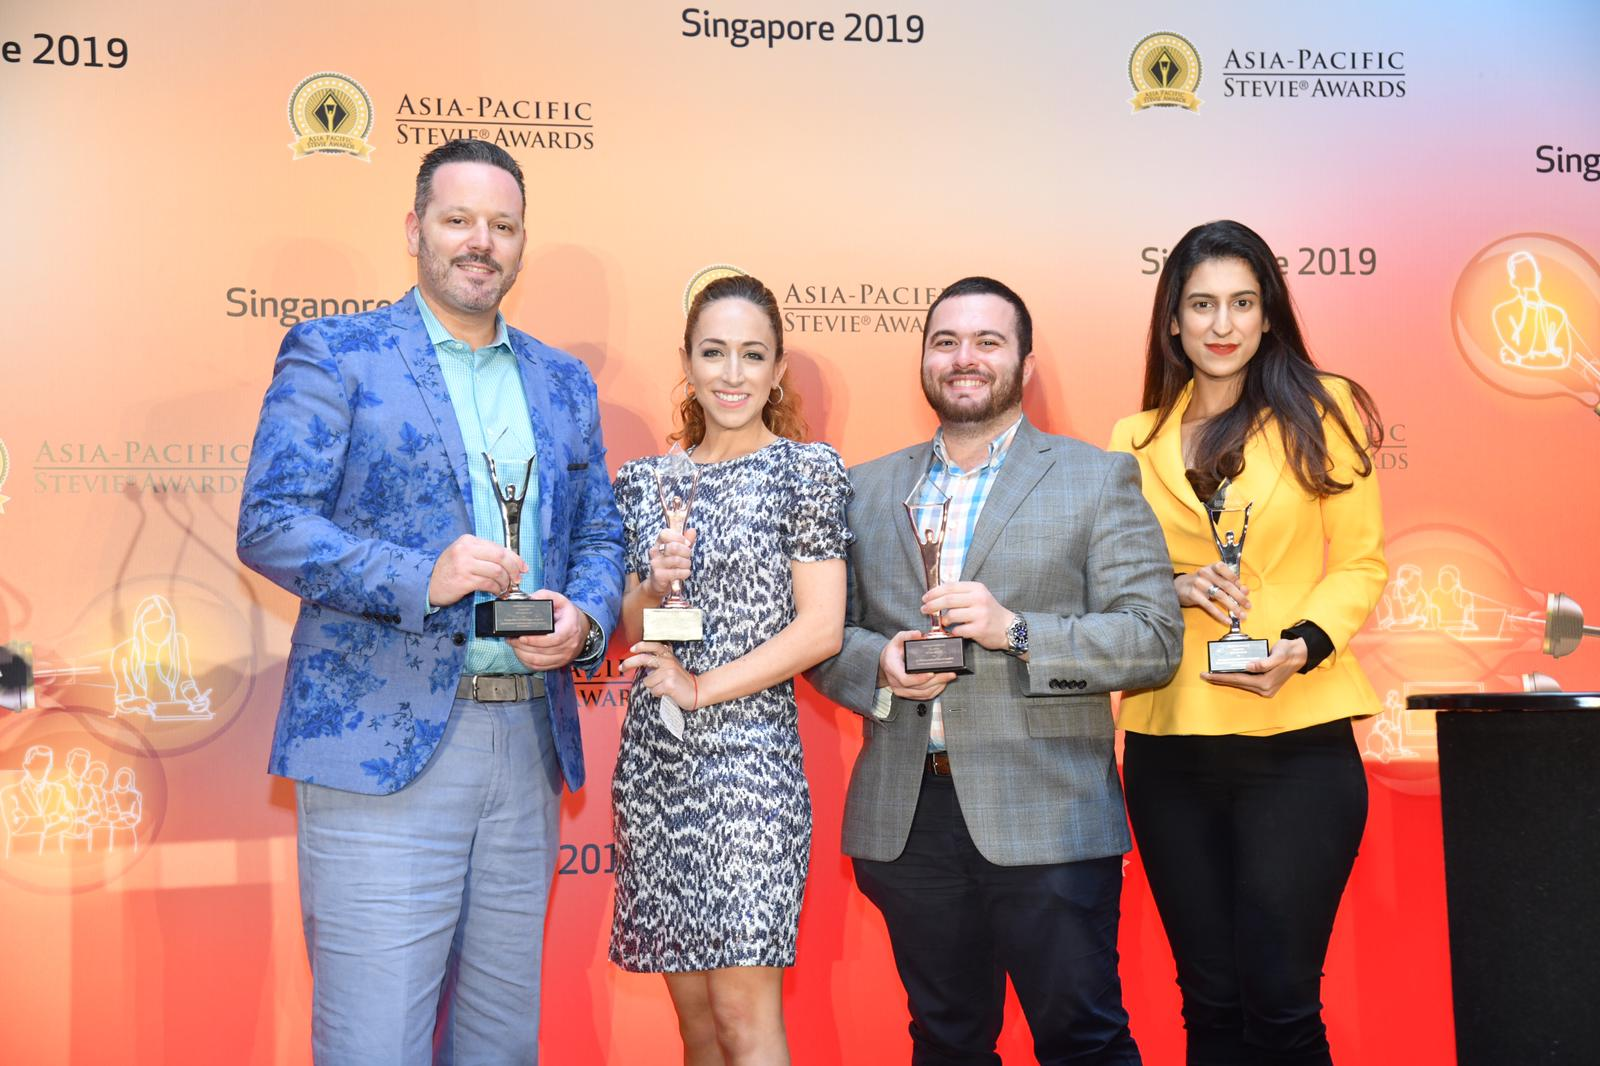 "<a class=""wonderplugin-gridgallery-posttitle-link"" href=""https://effcreative.com/gallery/asia-pacific-awards-2019/"">Asia Pacific Awards, 2019</a>"